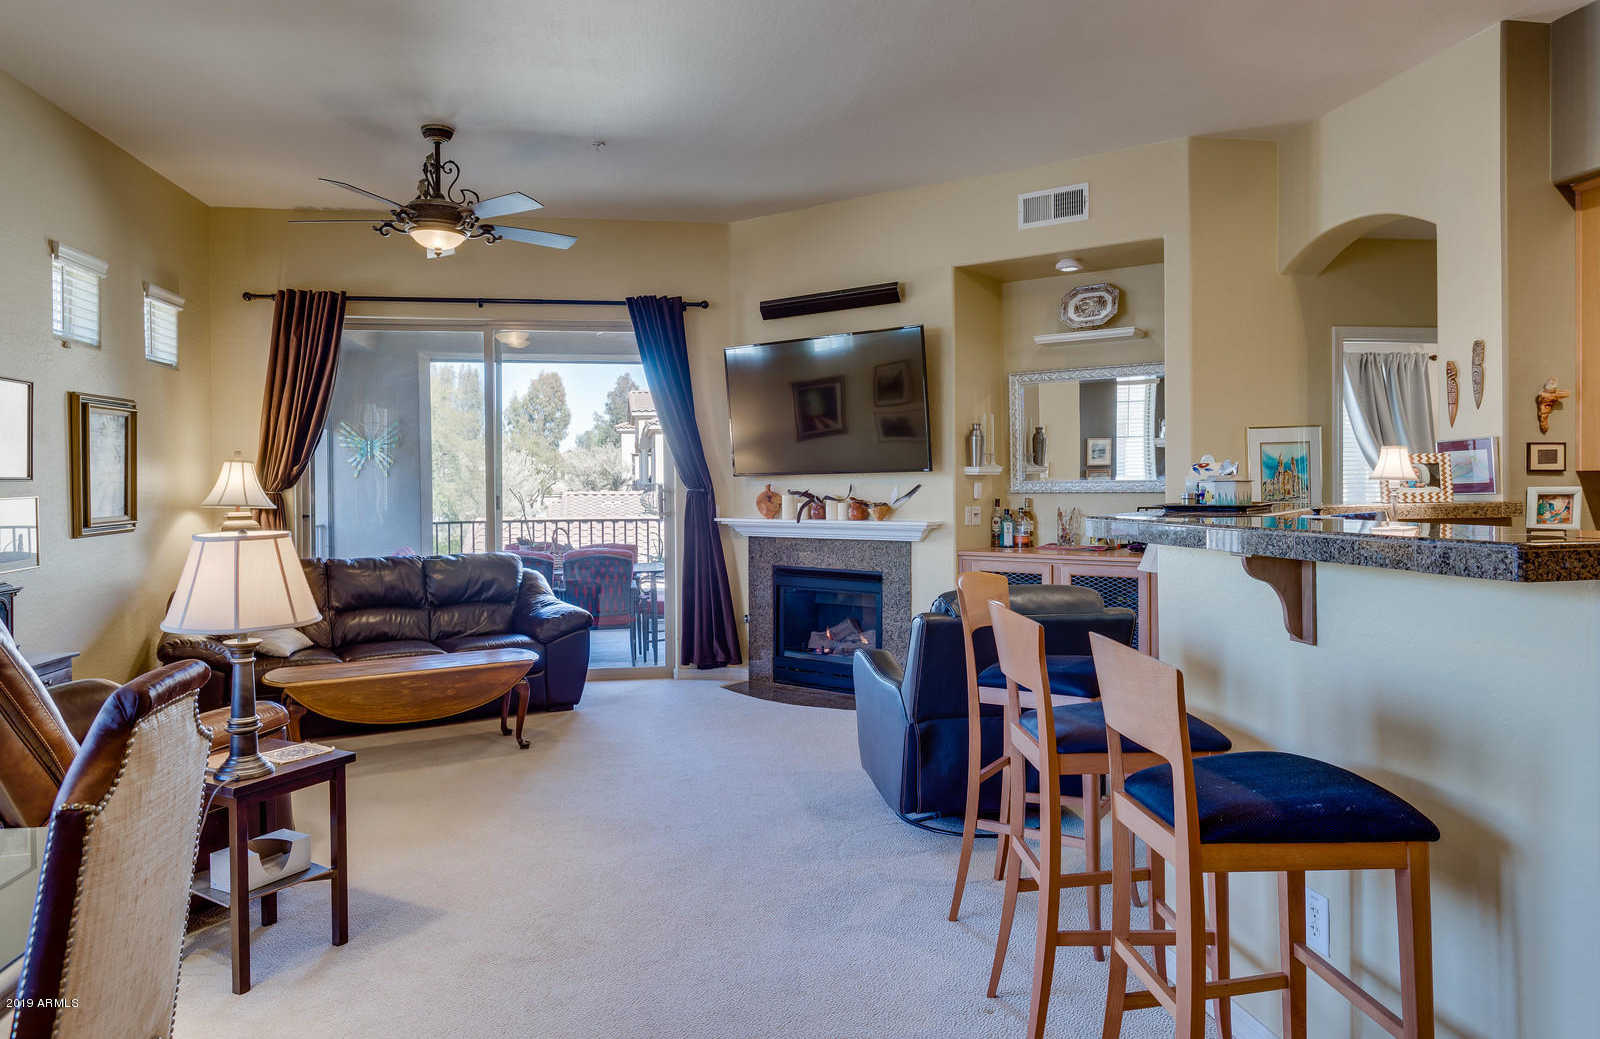 $409,000 - 3Br/2Ba -  for Sale in Sovanna Condominiums Scottsdale Country Club Mod, Scottsdale